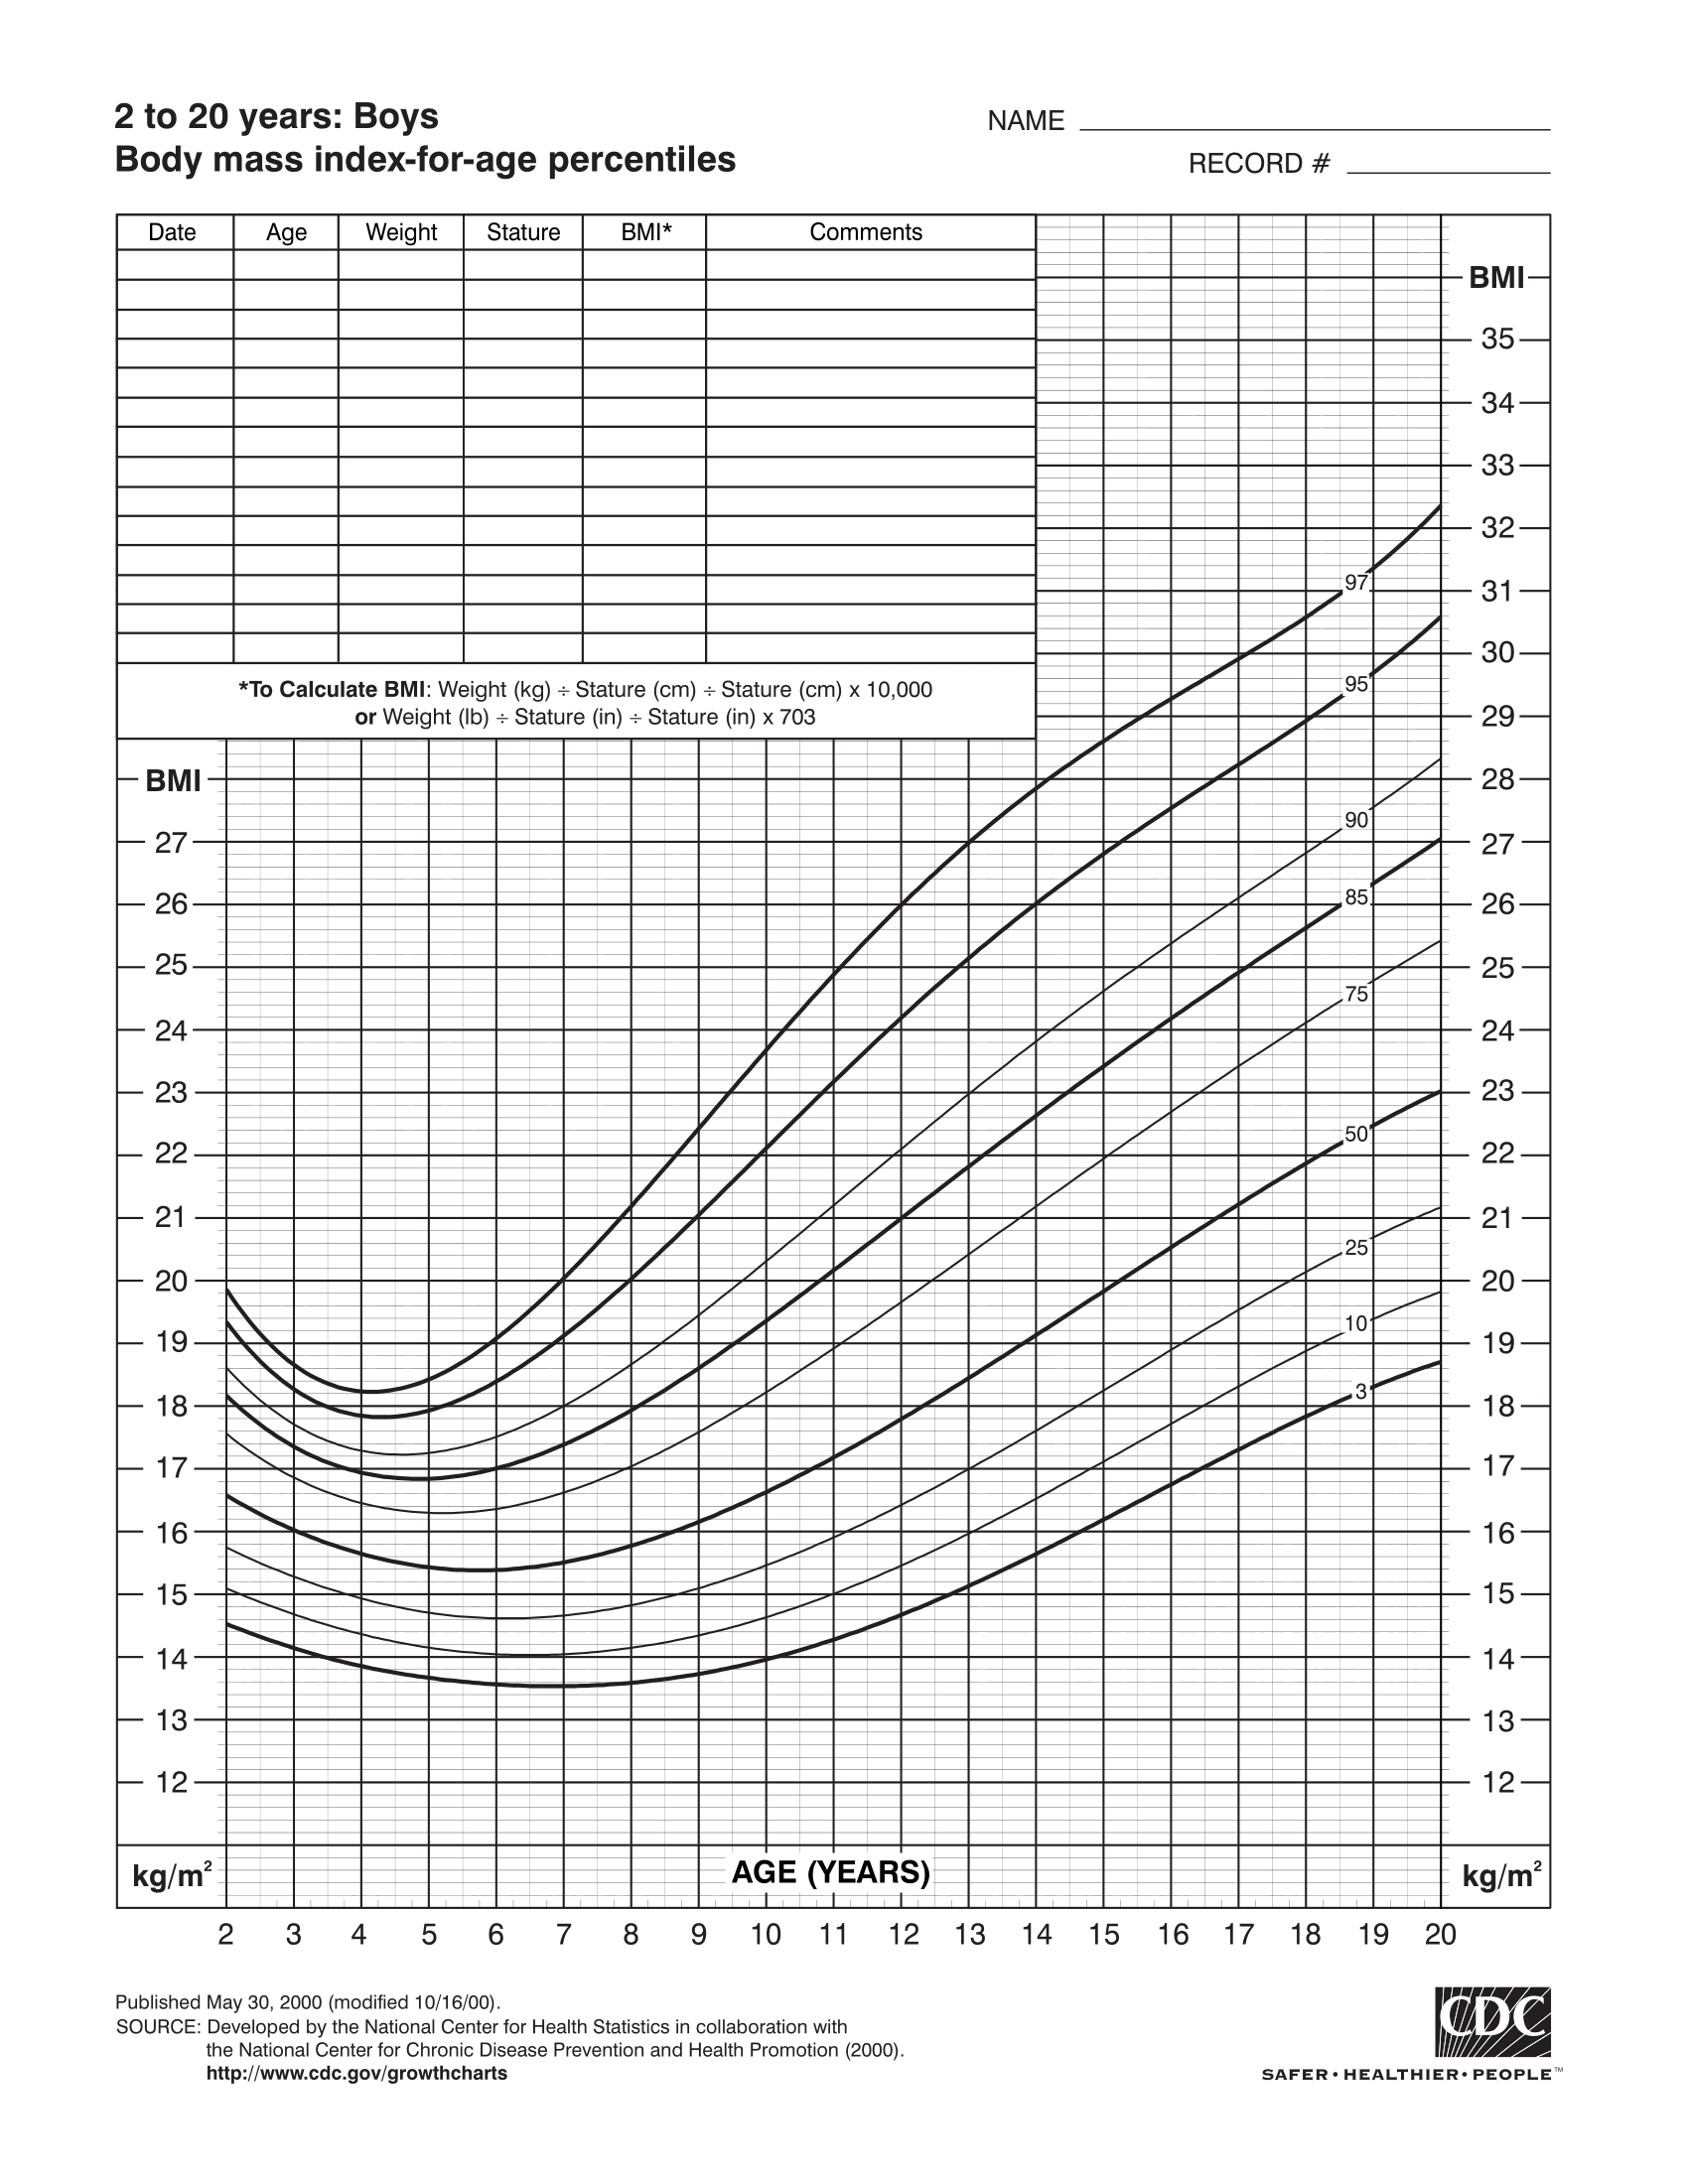 A BMI percentile chart for boys aged 2-20.